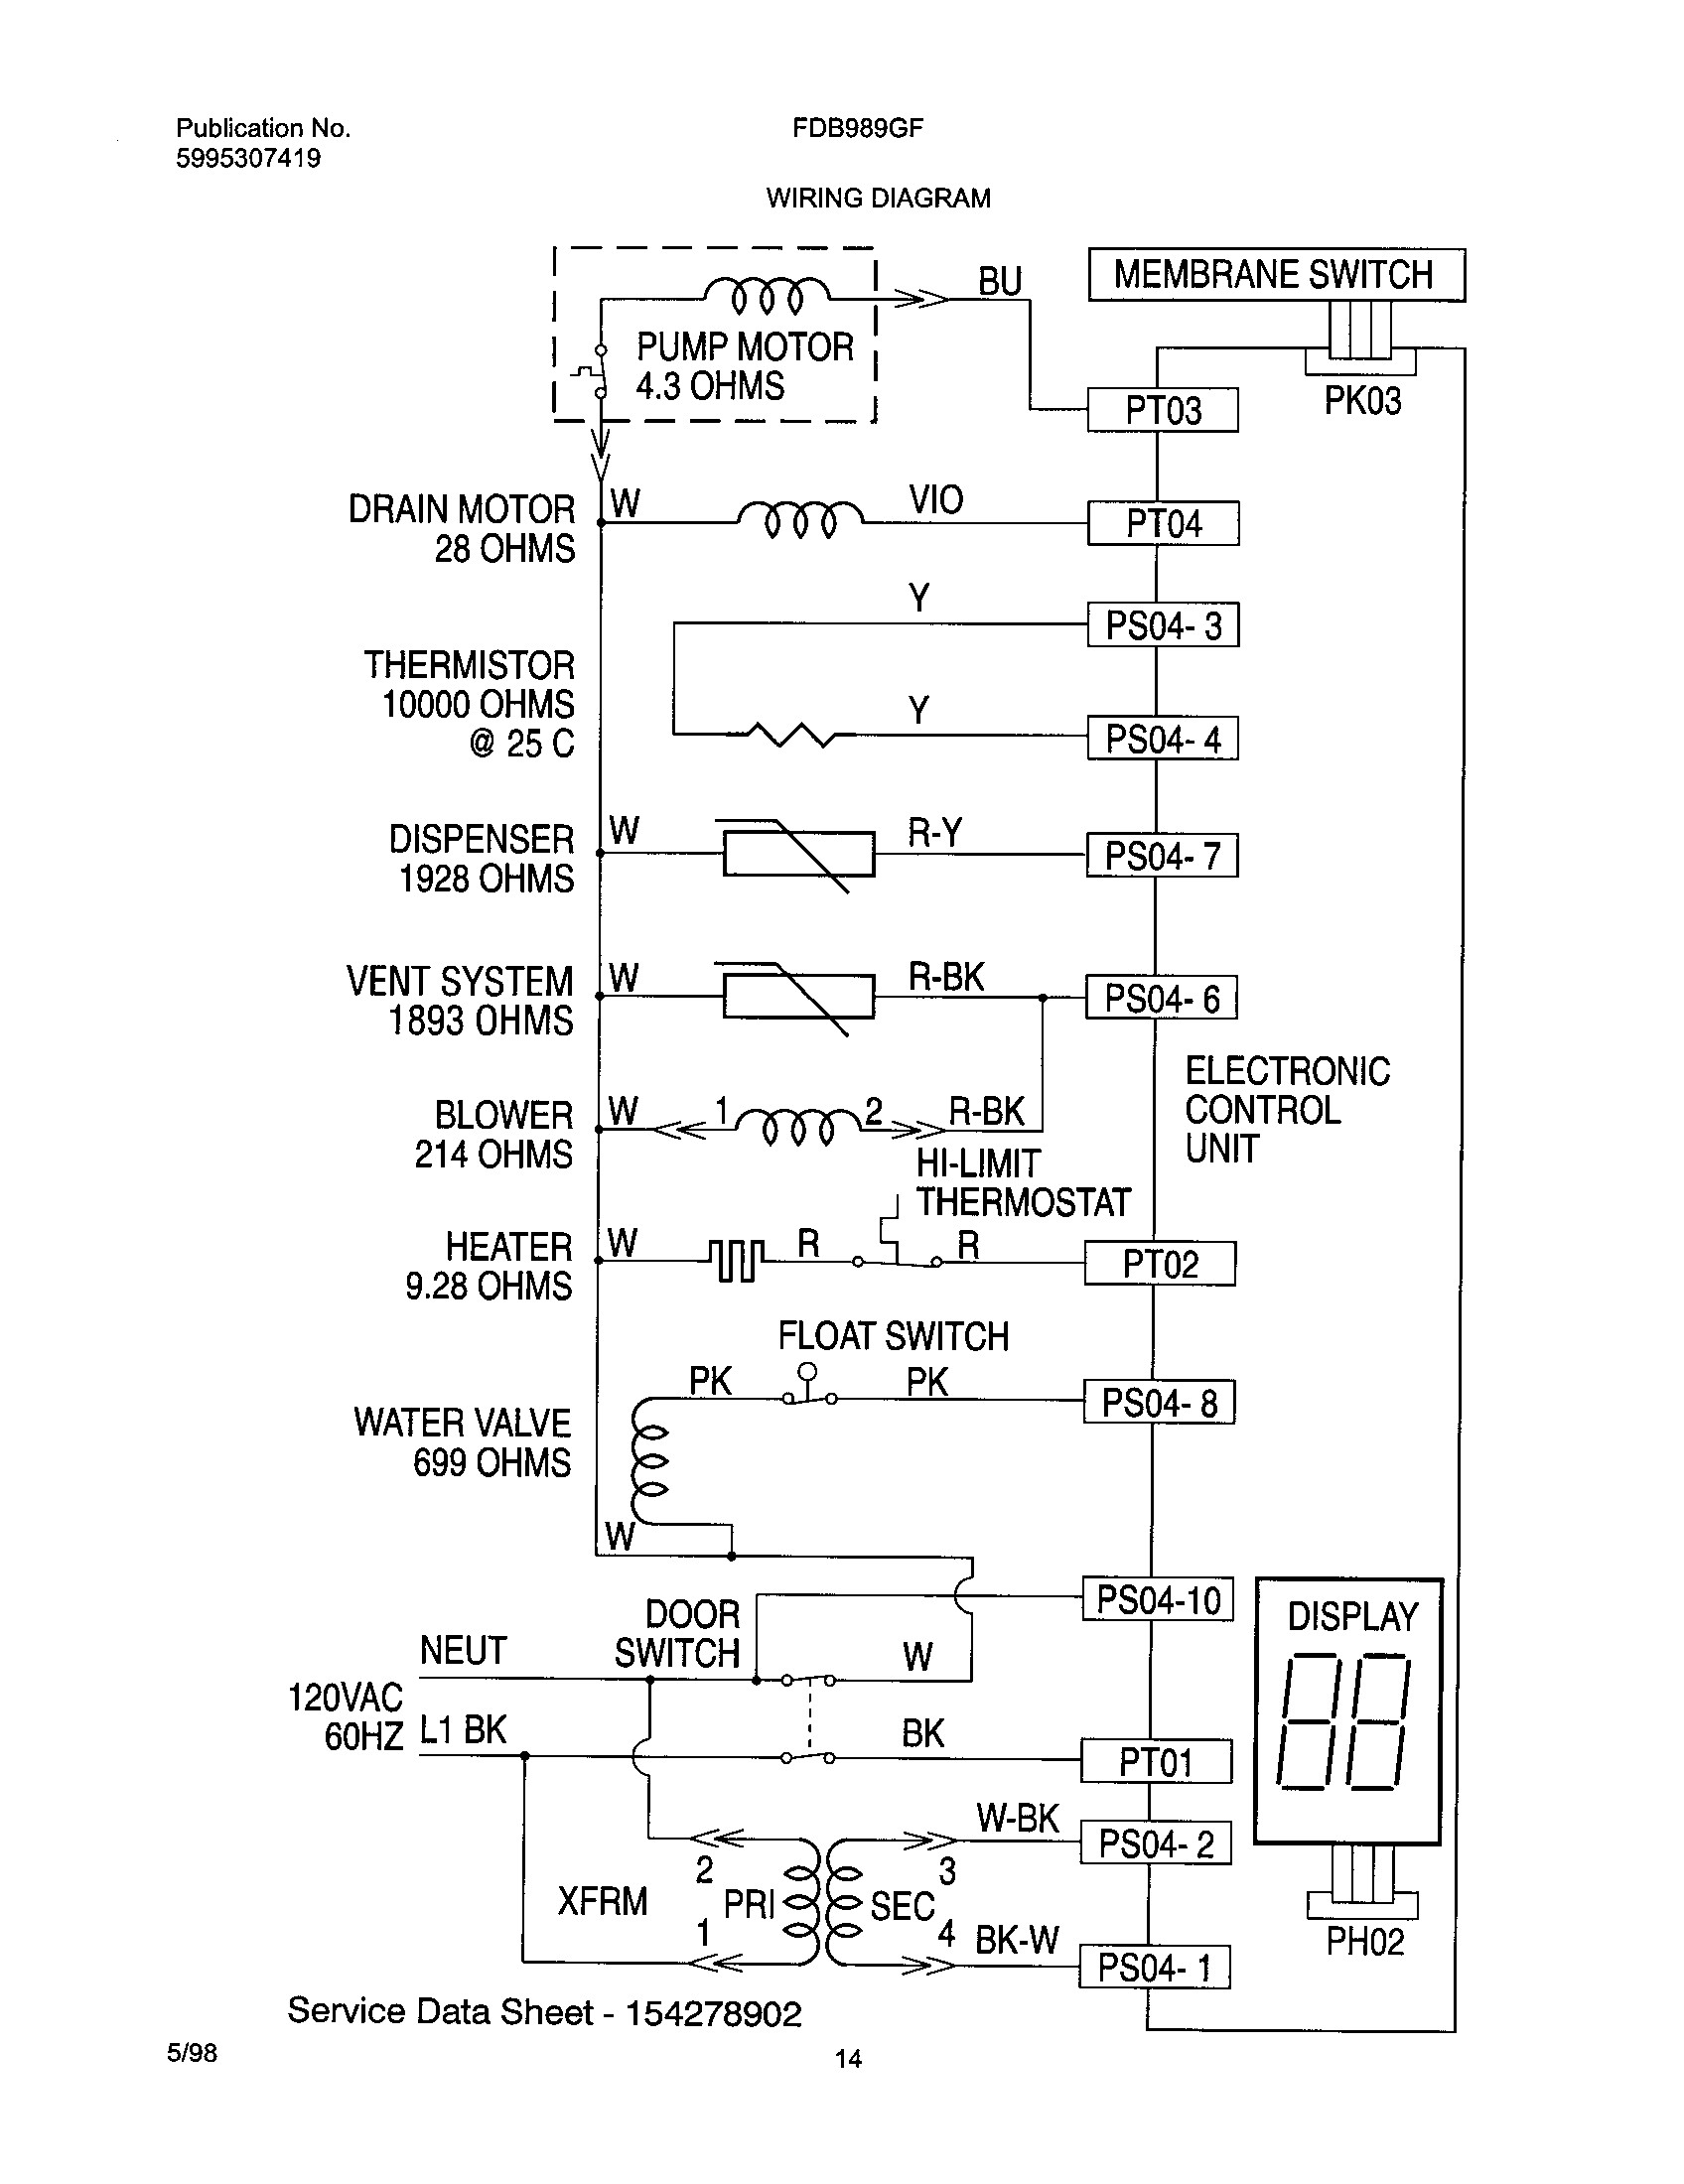 Frigidaire Dishwasher Parts Diagram Wiring Diagram Parts to Frigidaire B2network Of Frigidaire Dishwasher Parts Diagram